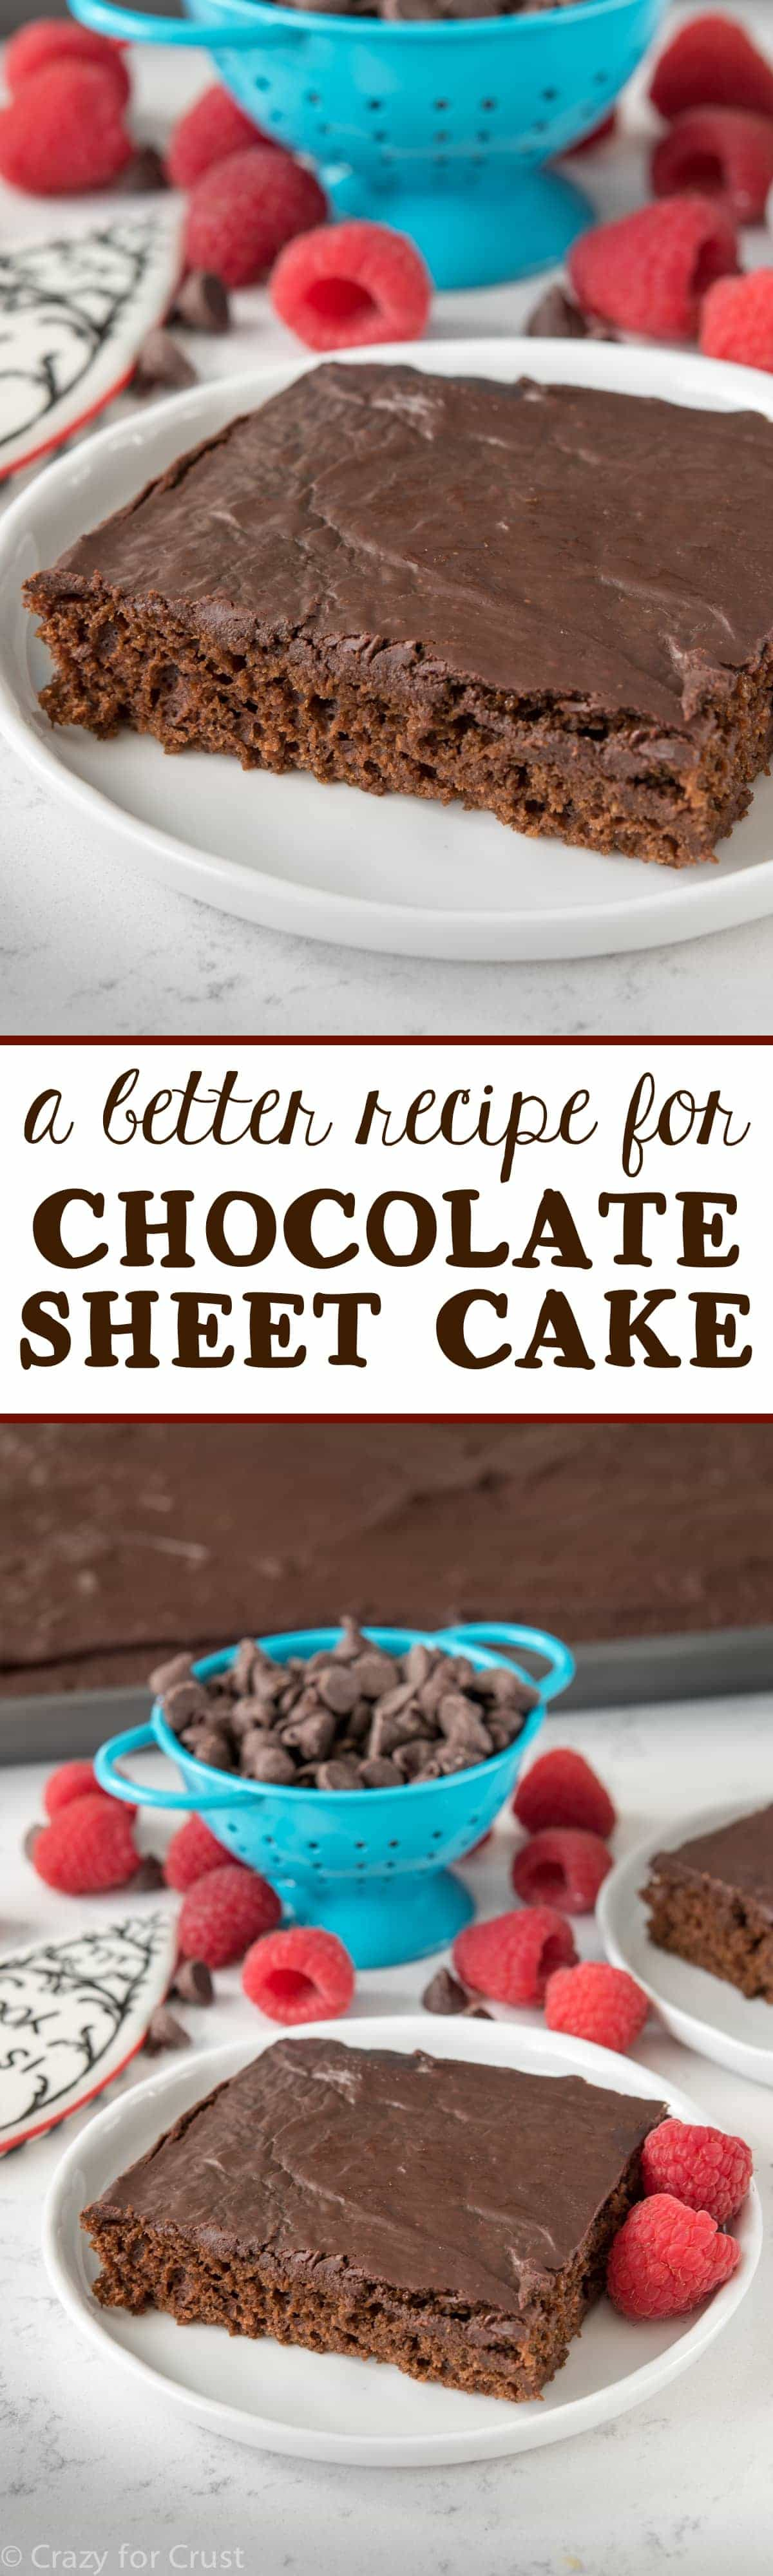 This is a Better Chocolate Sheet Cake Recipe! It's super chocolatey and moist but with NO eggs or oil! You MUST try this easy cake recipe!